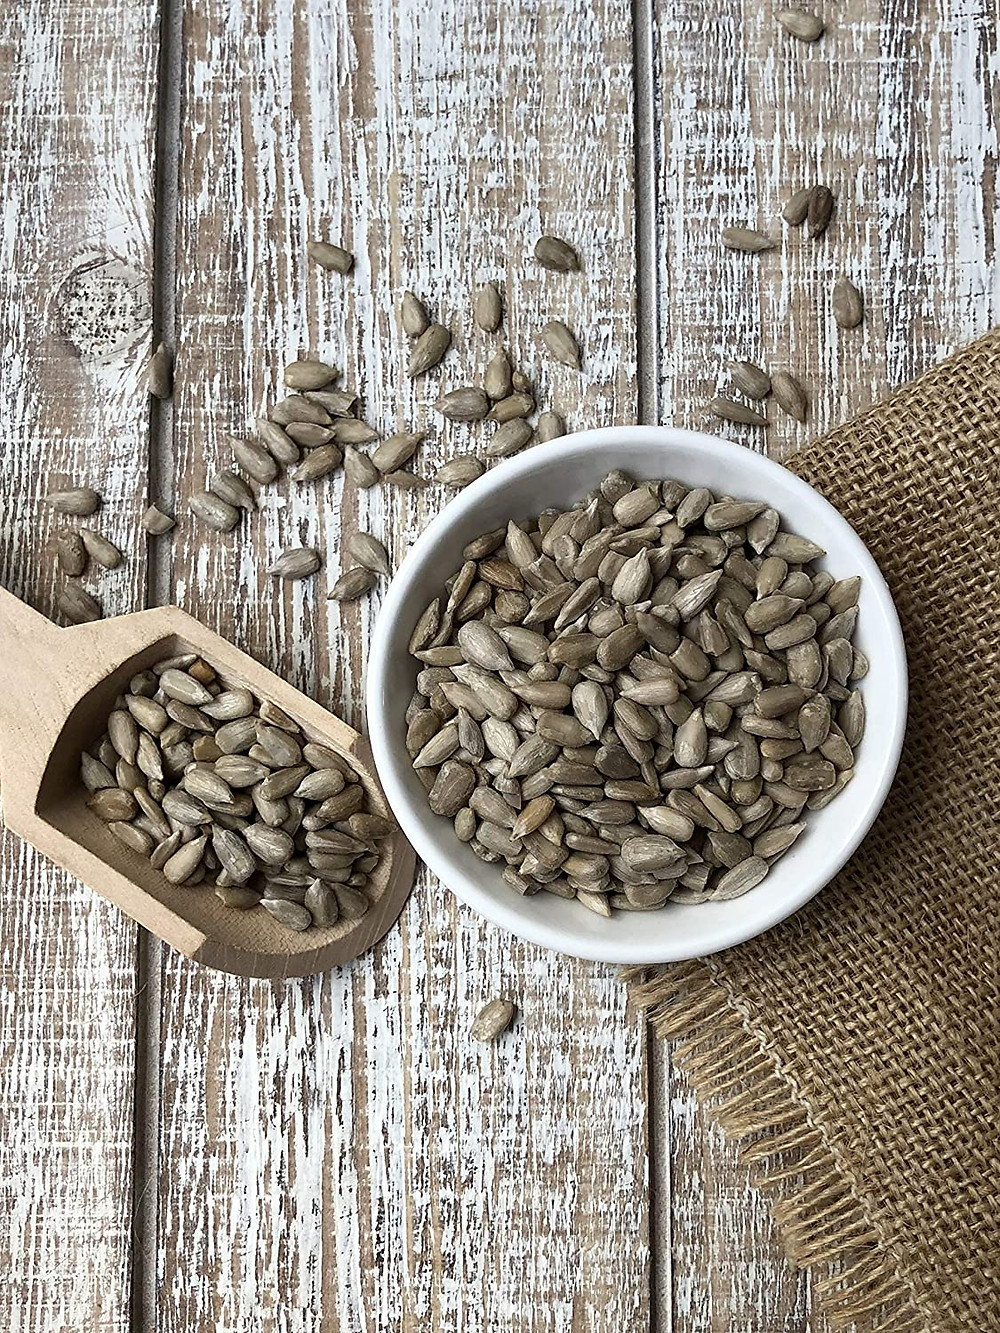 Sunflower Seeds are keto friendly gluten free healthy snacks high in fiber